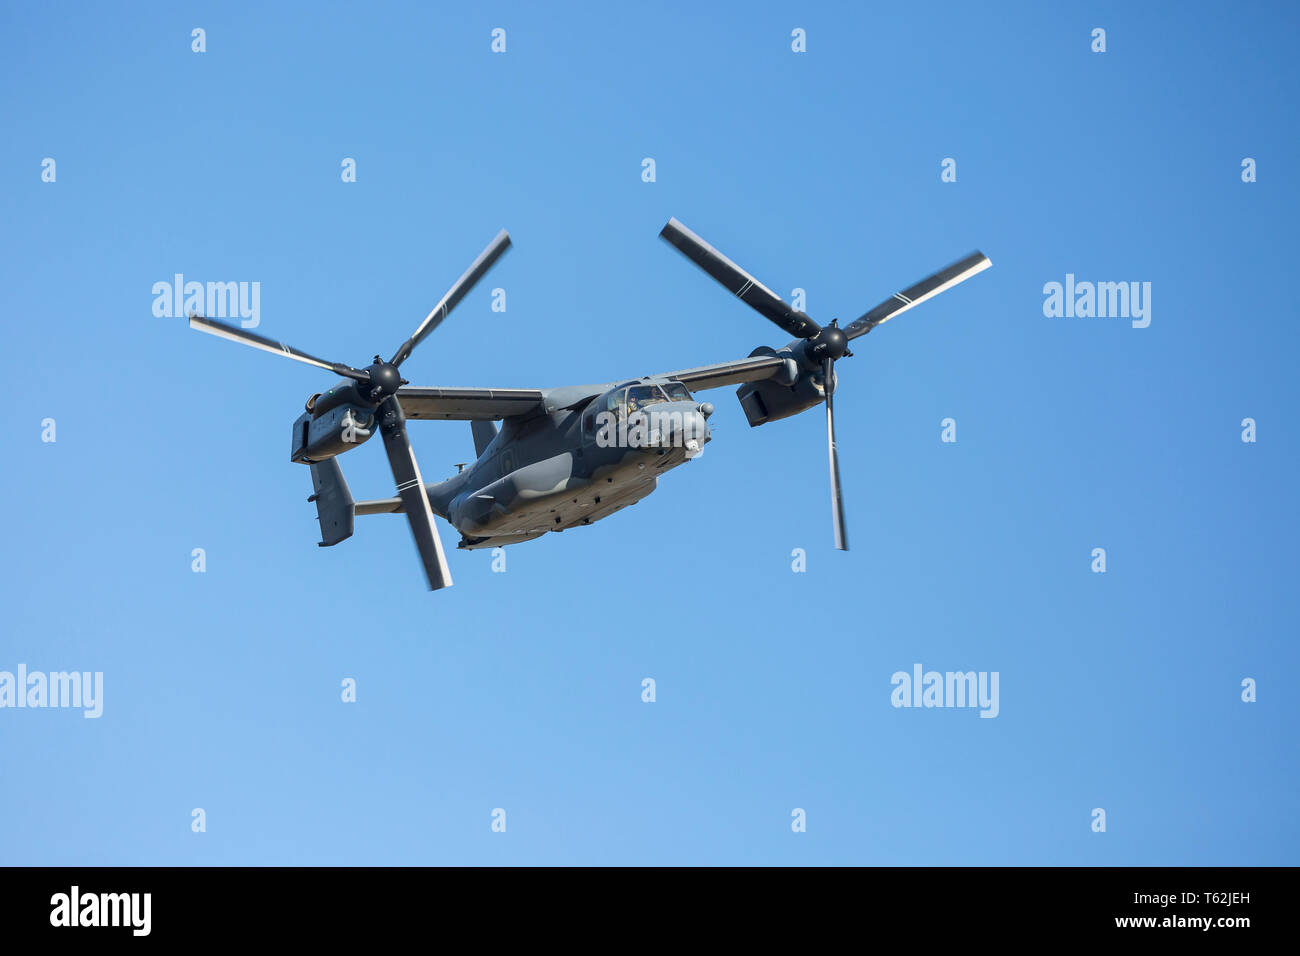 Close up of the American multi-mission Bell Boeing V-22 Osprey, a tilt-rotor military aircraft, in flight over the Mach Loop, Wales, UK. Stock Photo